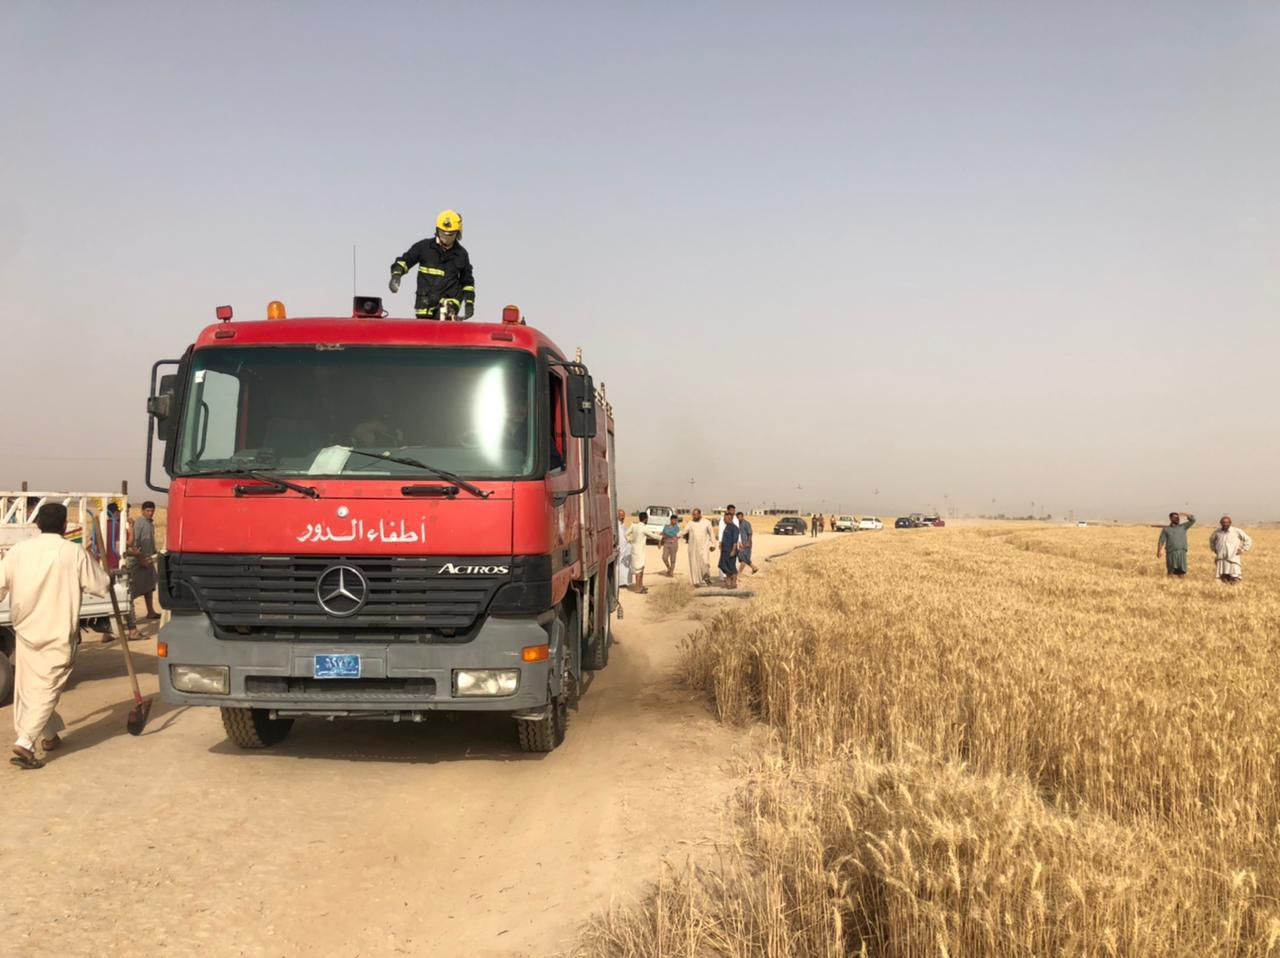 Saving 60 dunums, firefighting teams extinguish a fire in a wheat field in Saladin